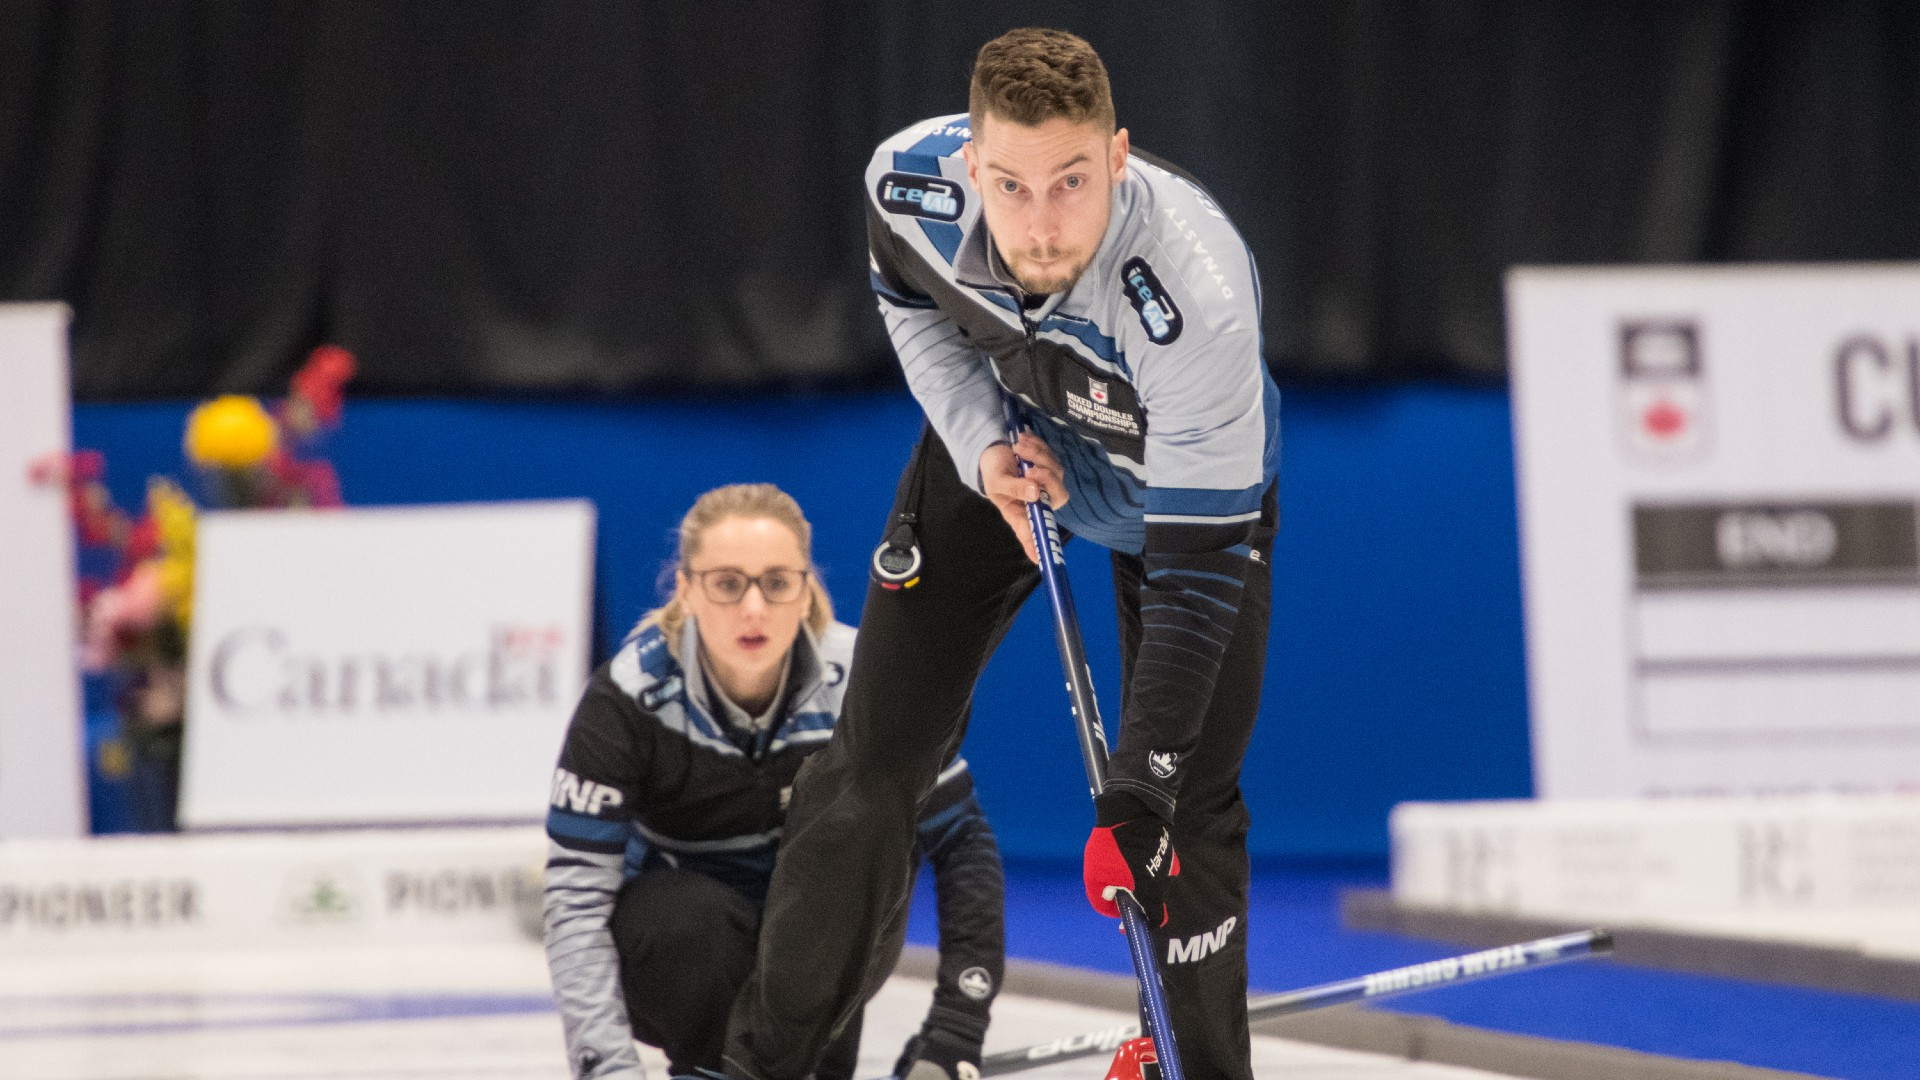 Canadian Mixed Doubles Curling Championship 2021: Results, standings, schedule and TV channel